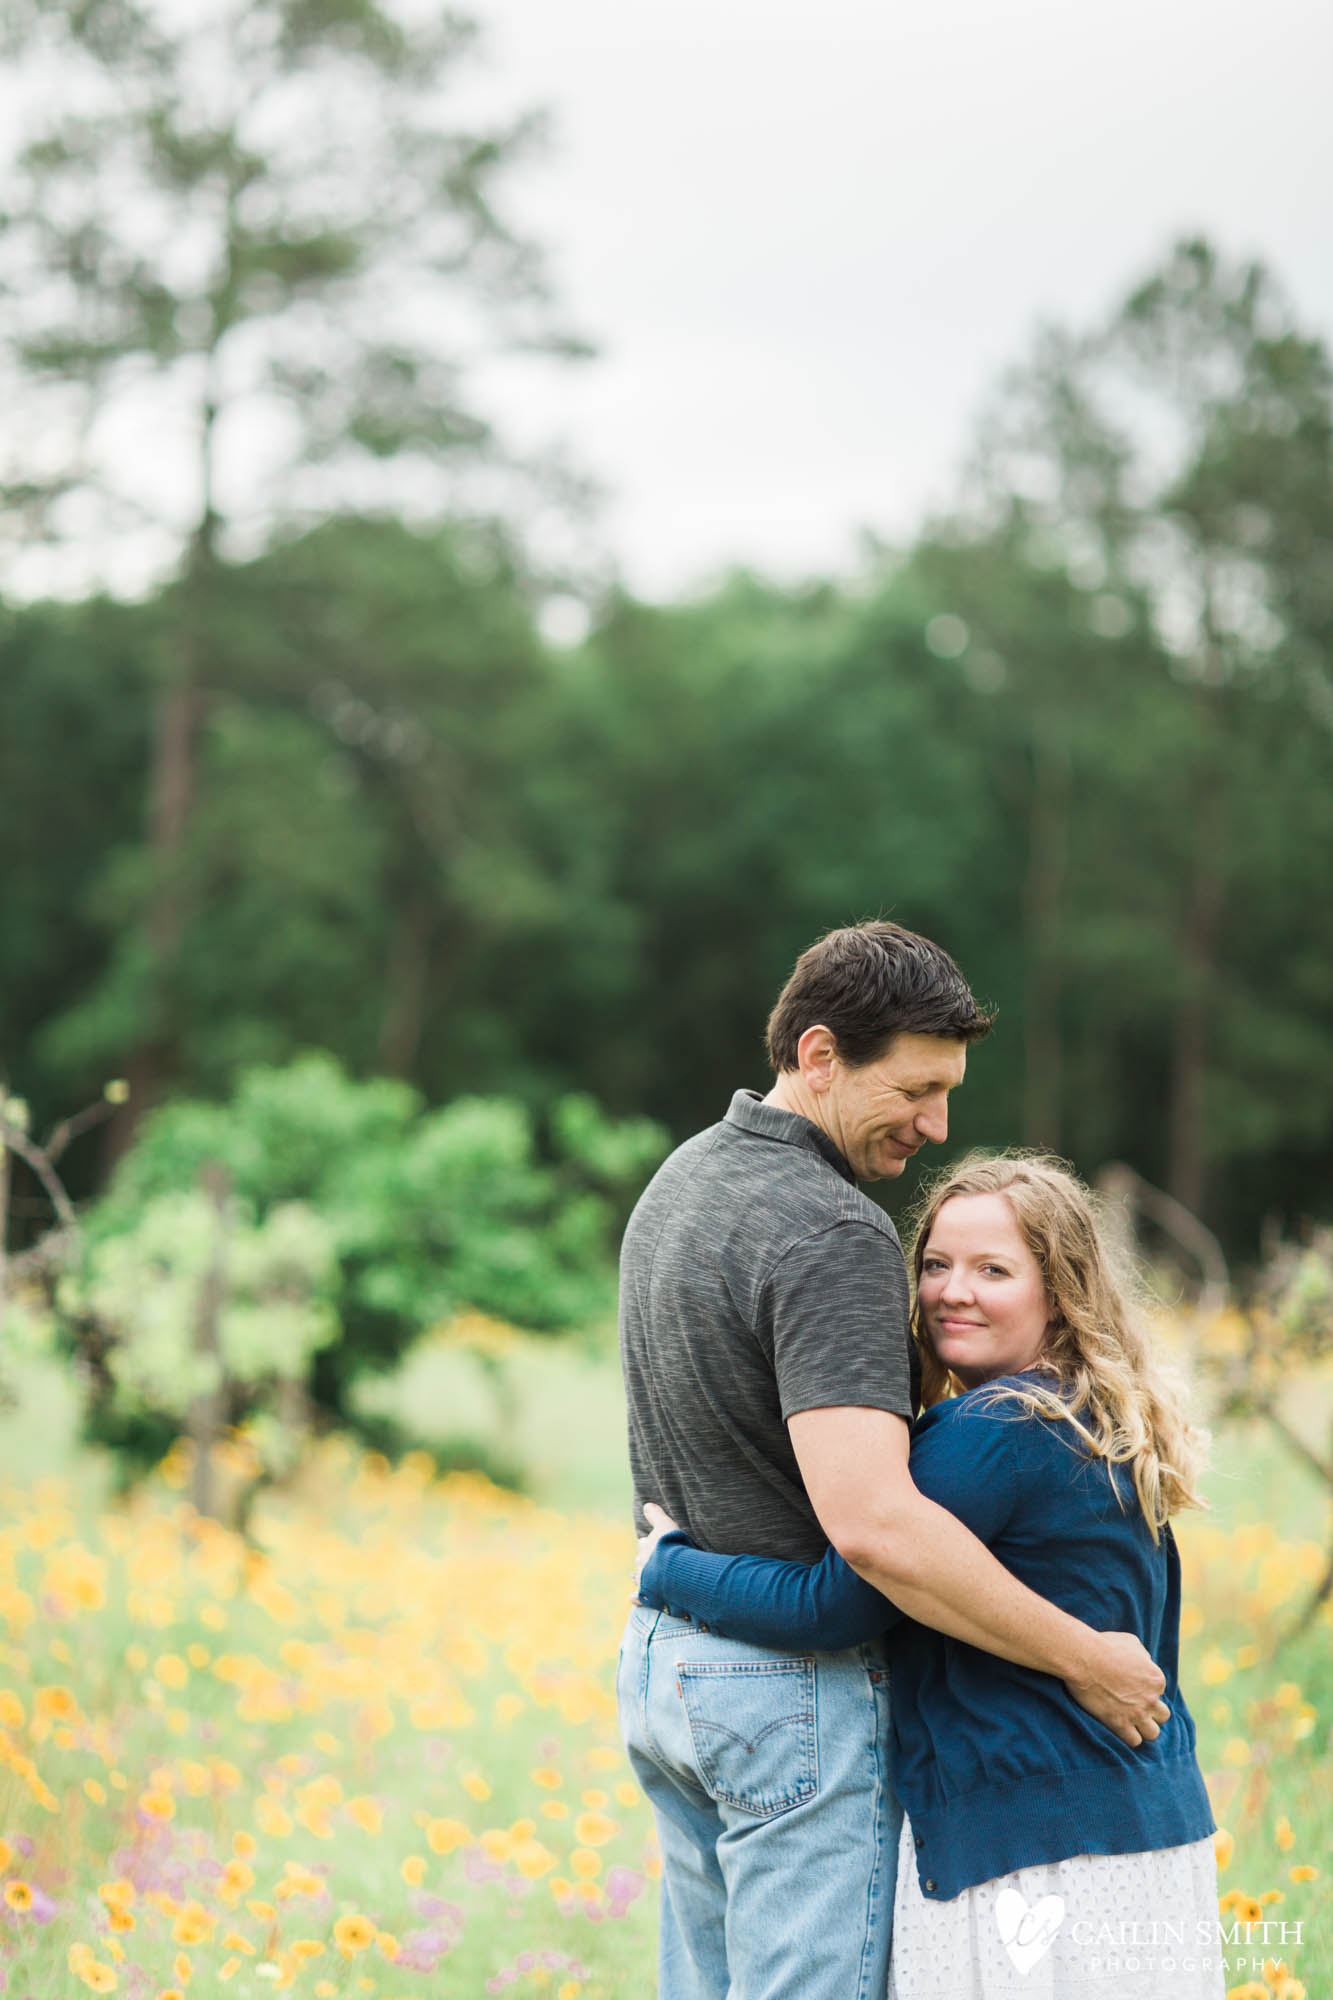 Christie_Nathan_Flower_Field_engagement_Photography_011.jpg